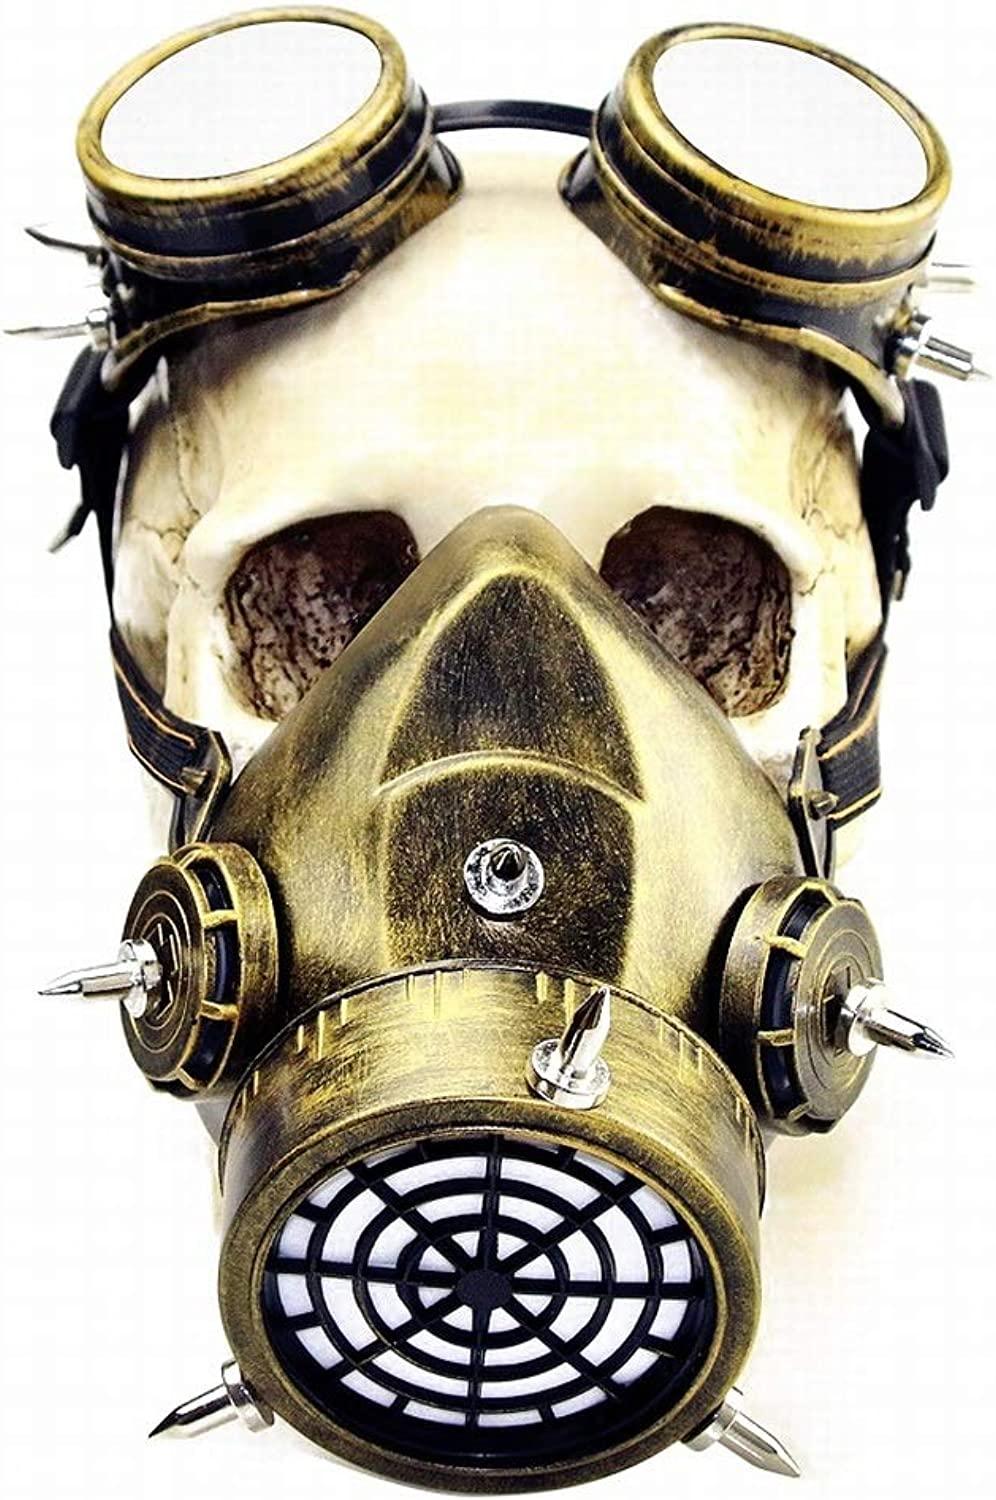 Kamiwwso Halloween Masquerade Gothic Mask Makeup Steampunk Gas Mask for Cosplay Party